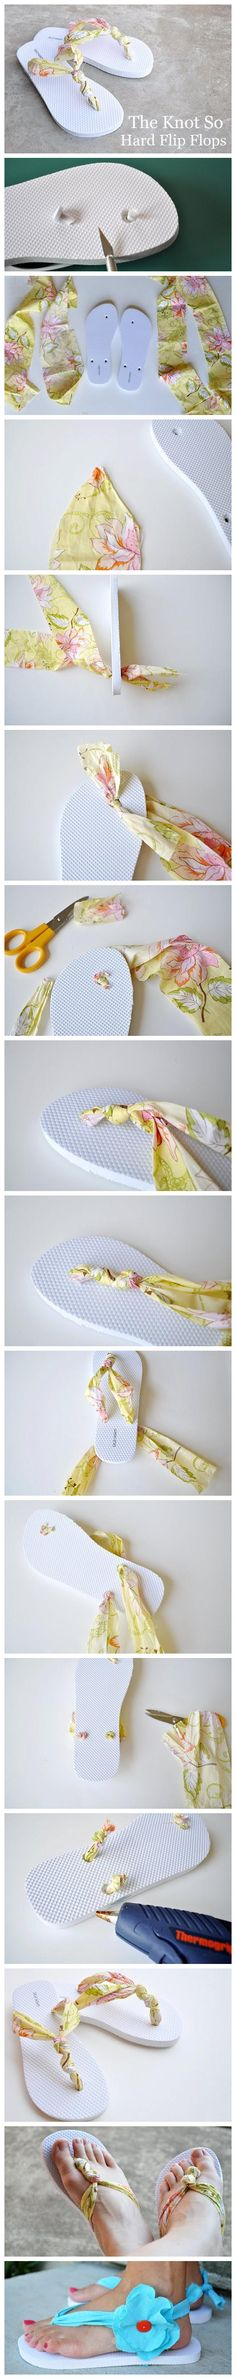 DIY: The Knot Flip Flops